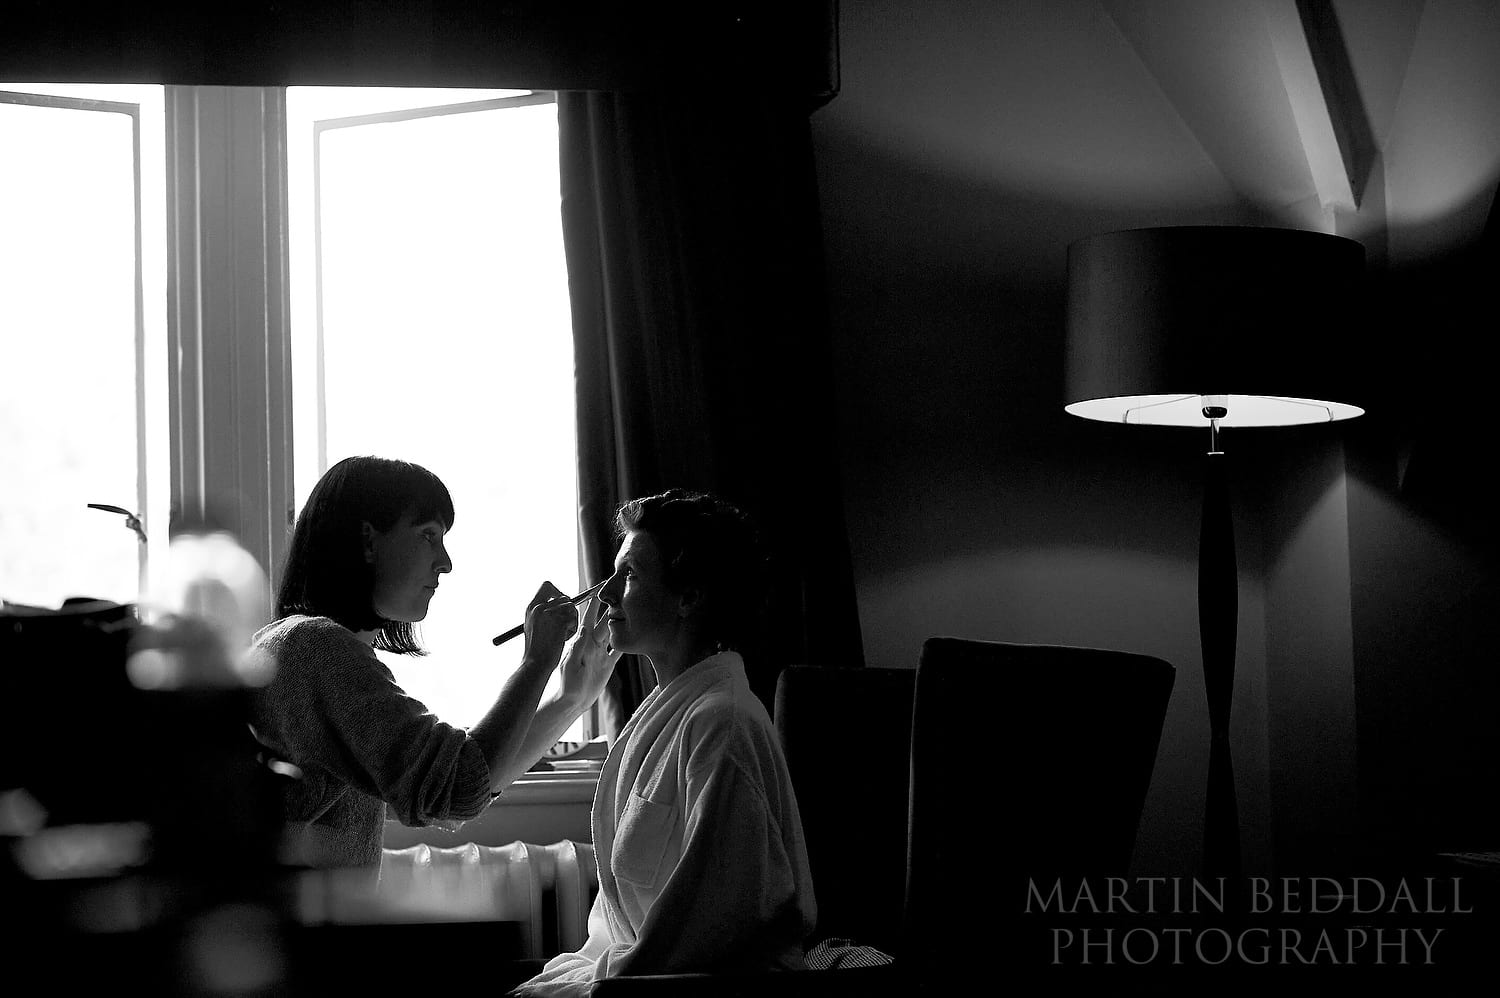 Wedding photography in 2011